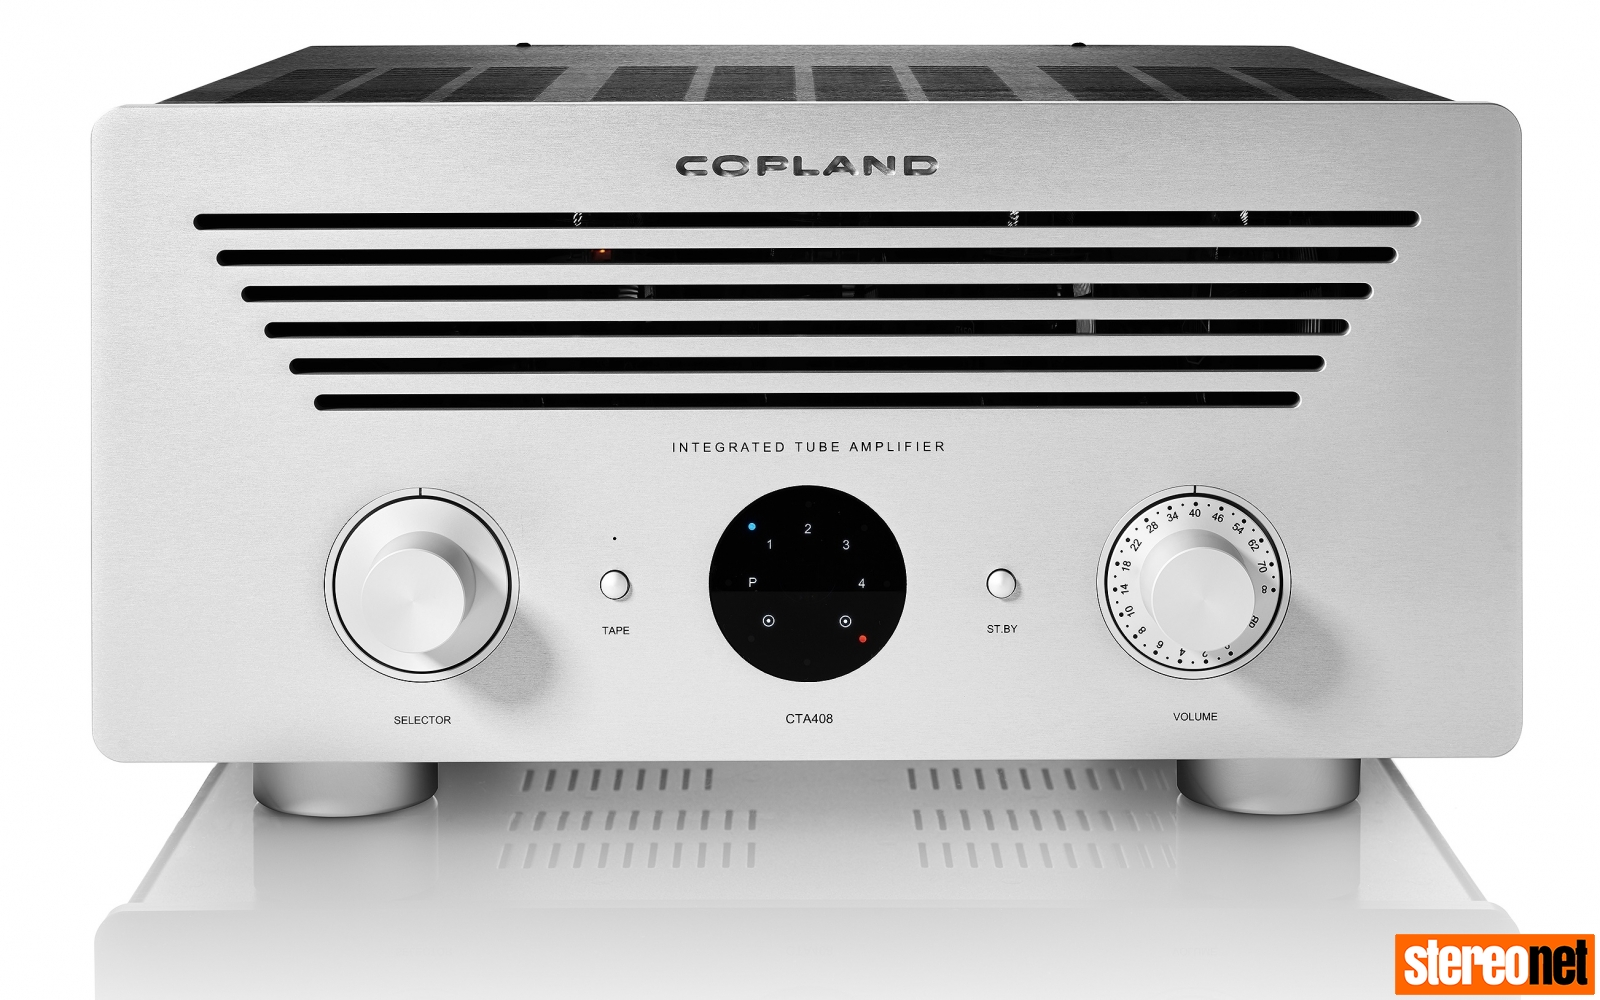 Copland CTA408 Integrated Tube Amplifier announced - UK